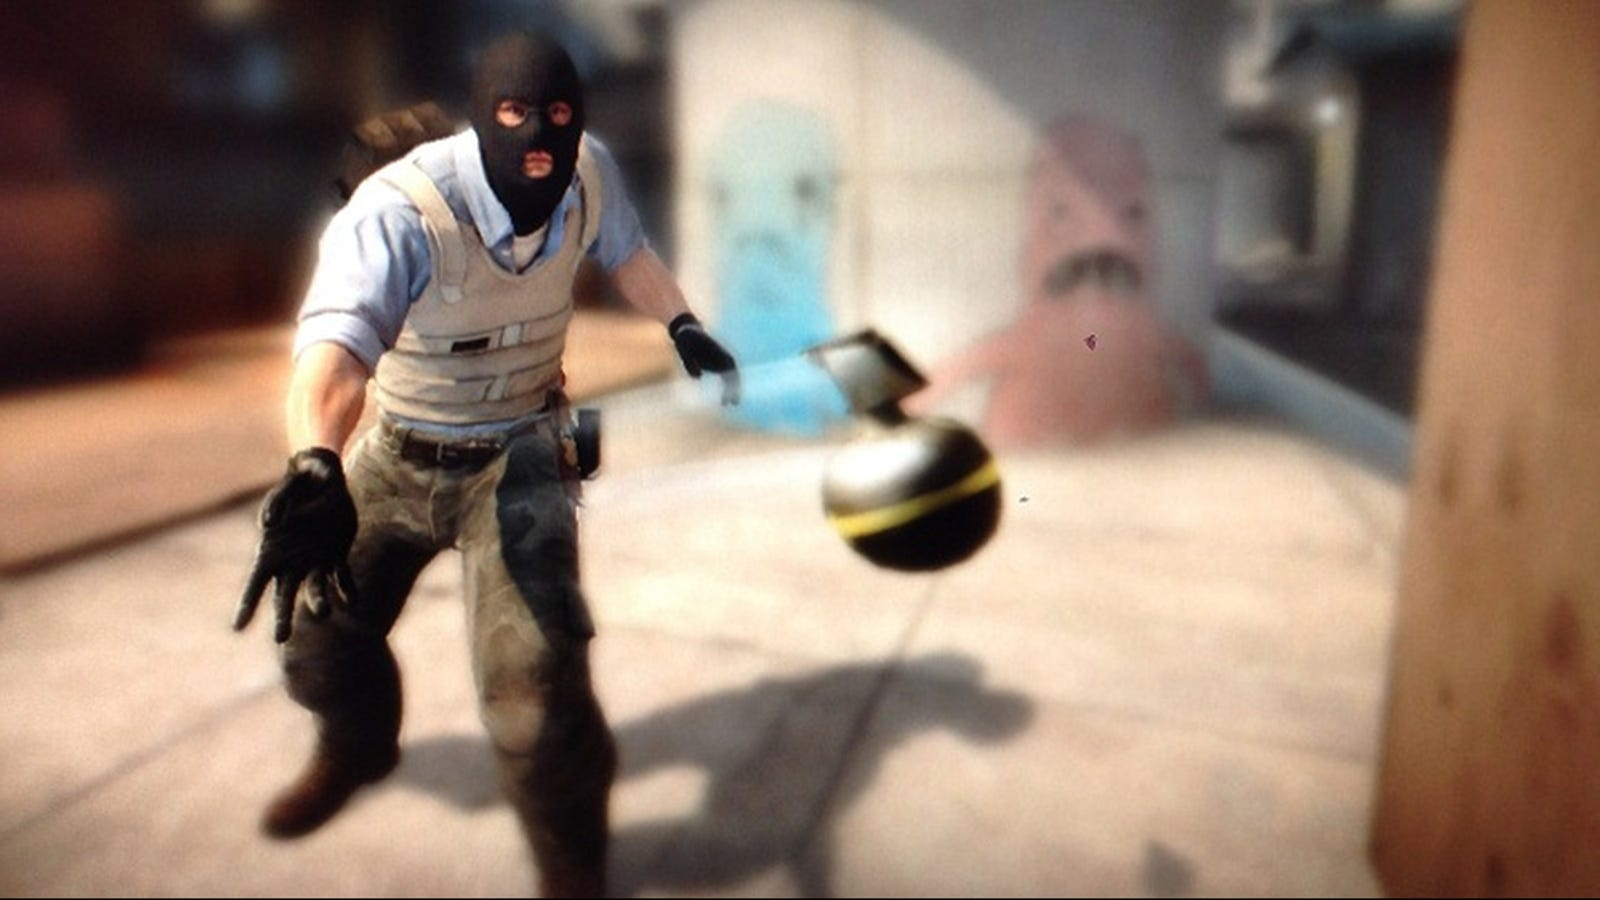 Pro Counter-Strike Team Loses Round Due To Notorious Grenade